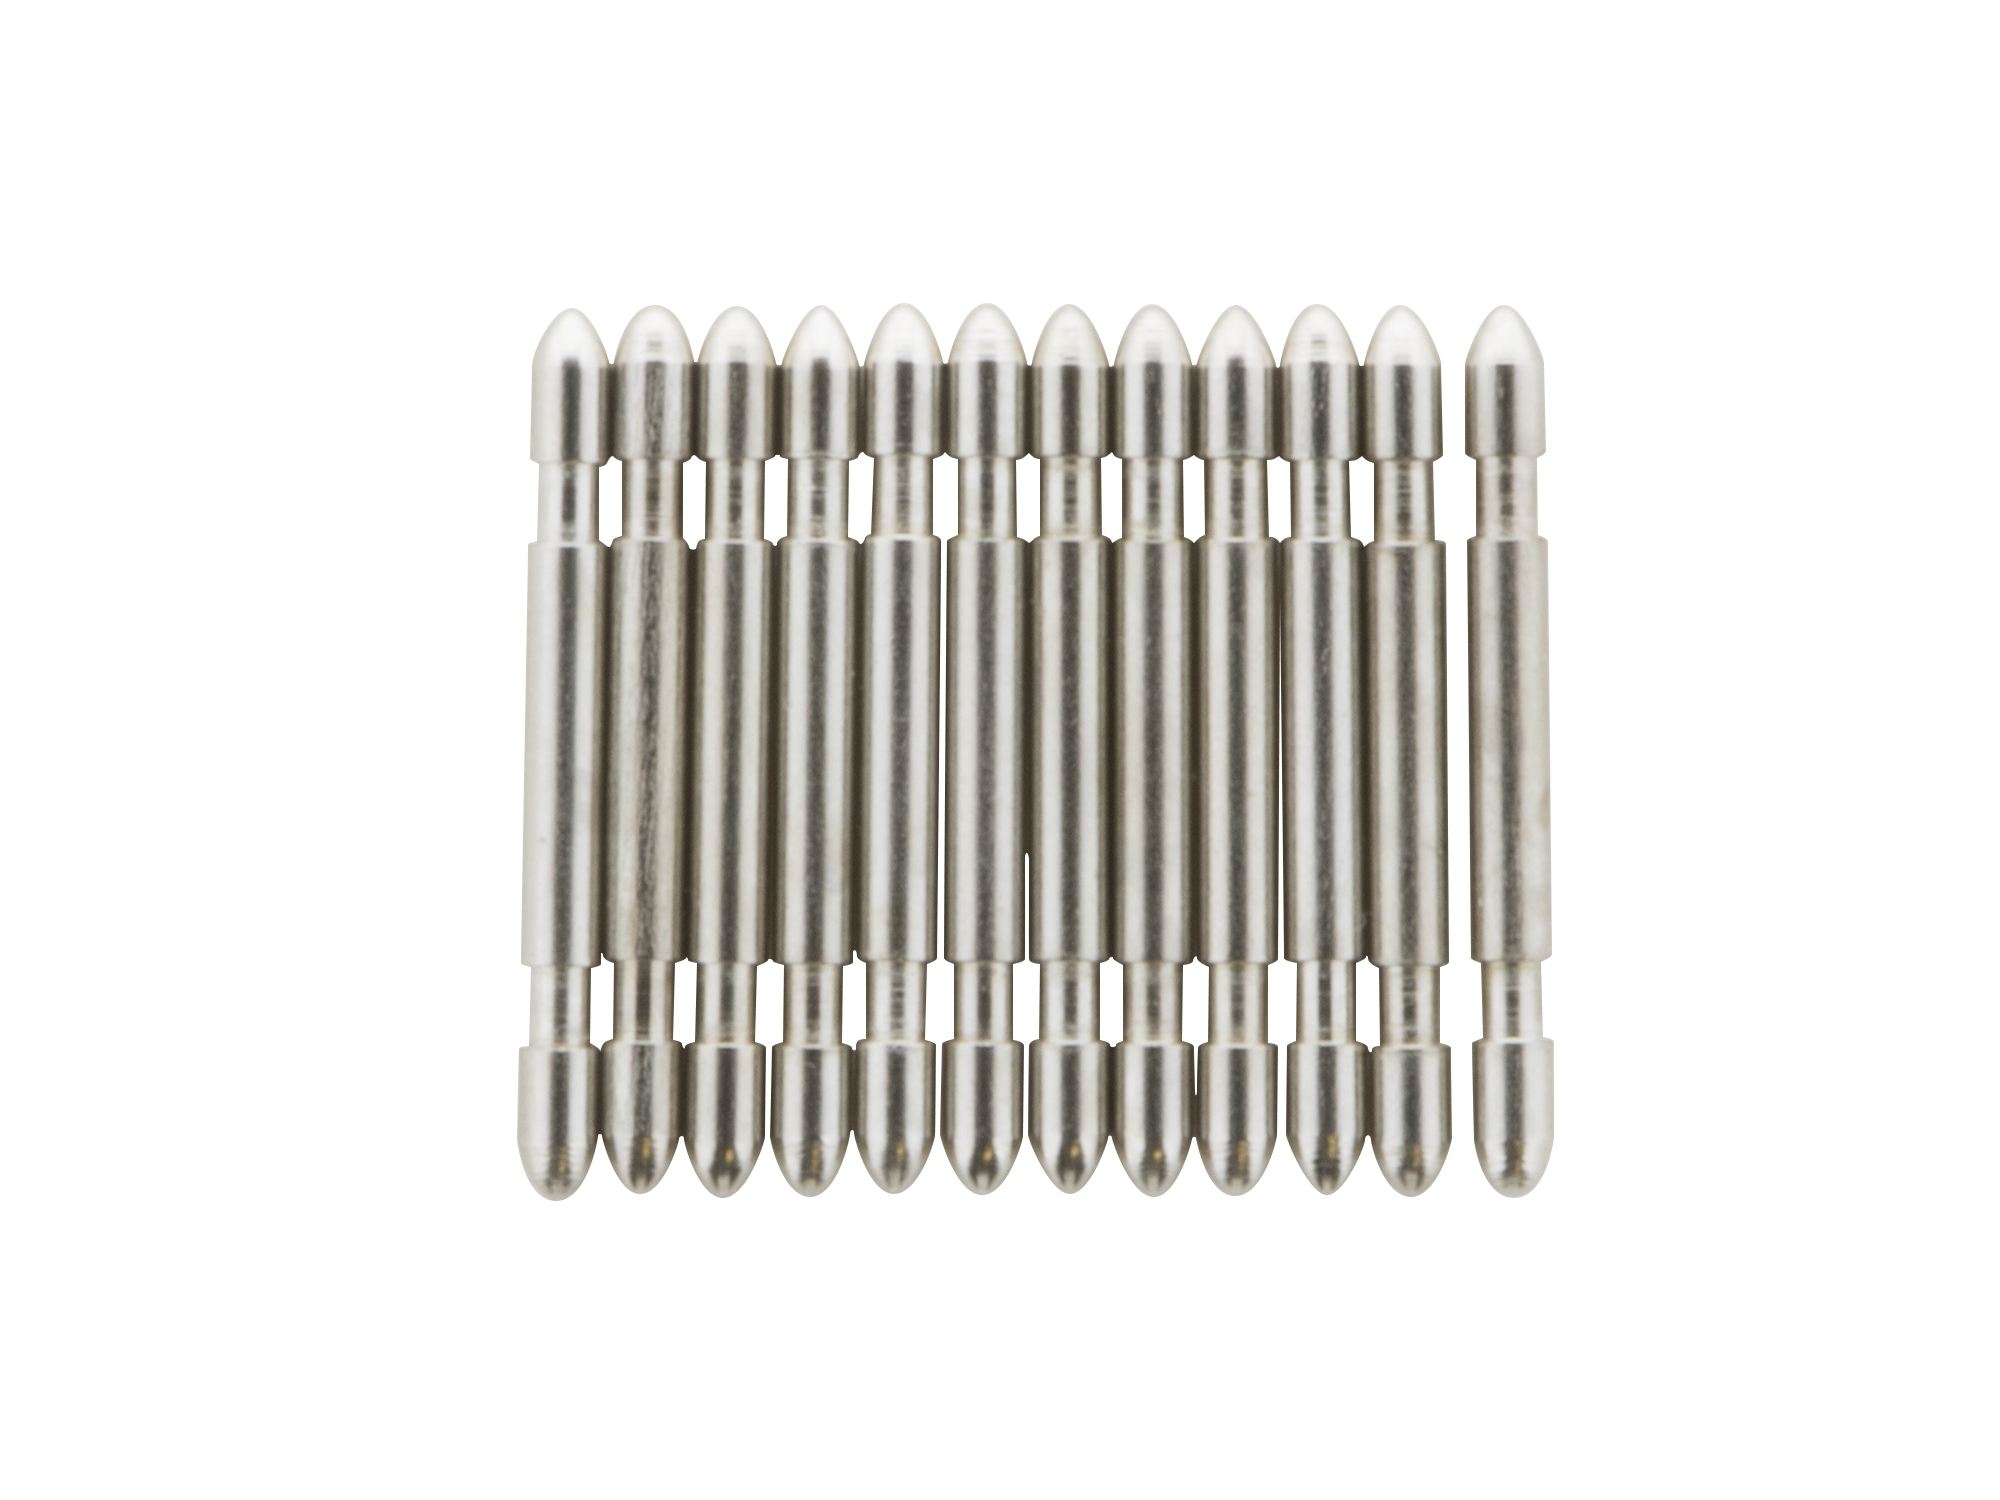 6-65072 LIONEL STEEL PINS (0-27 GAUGE)